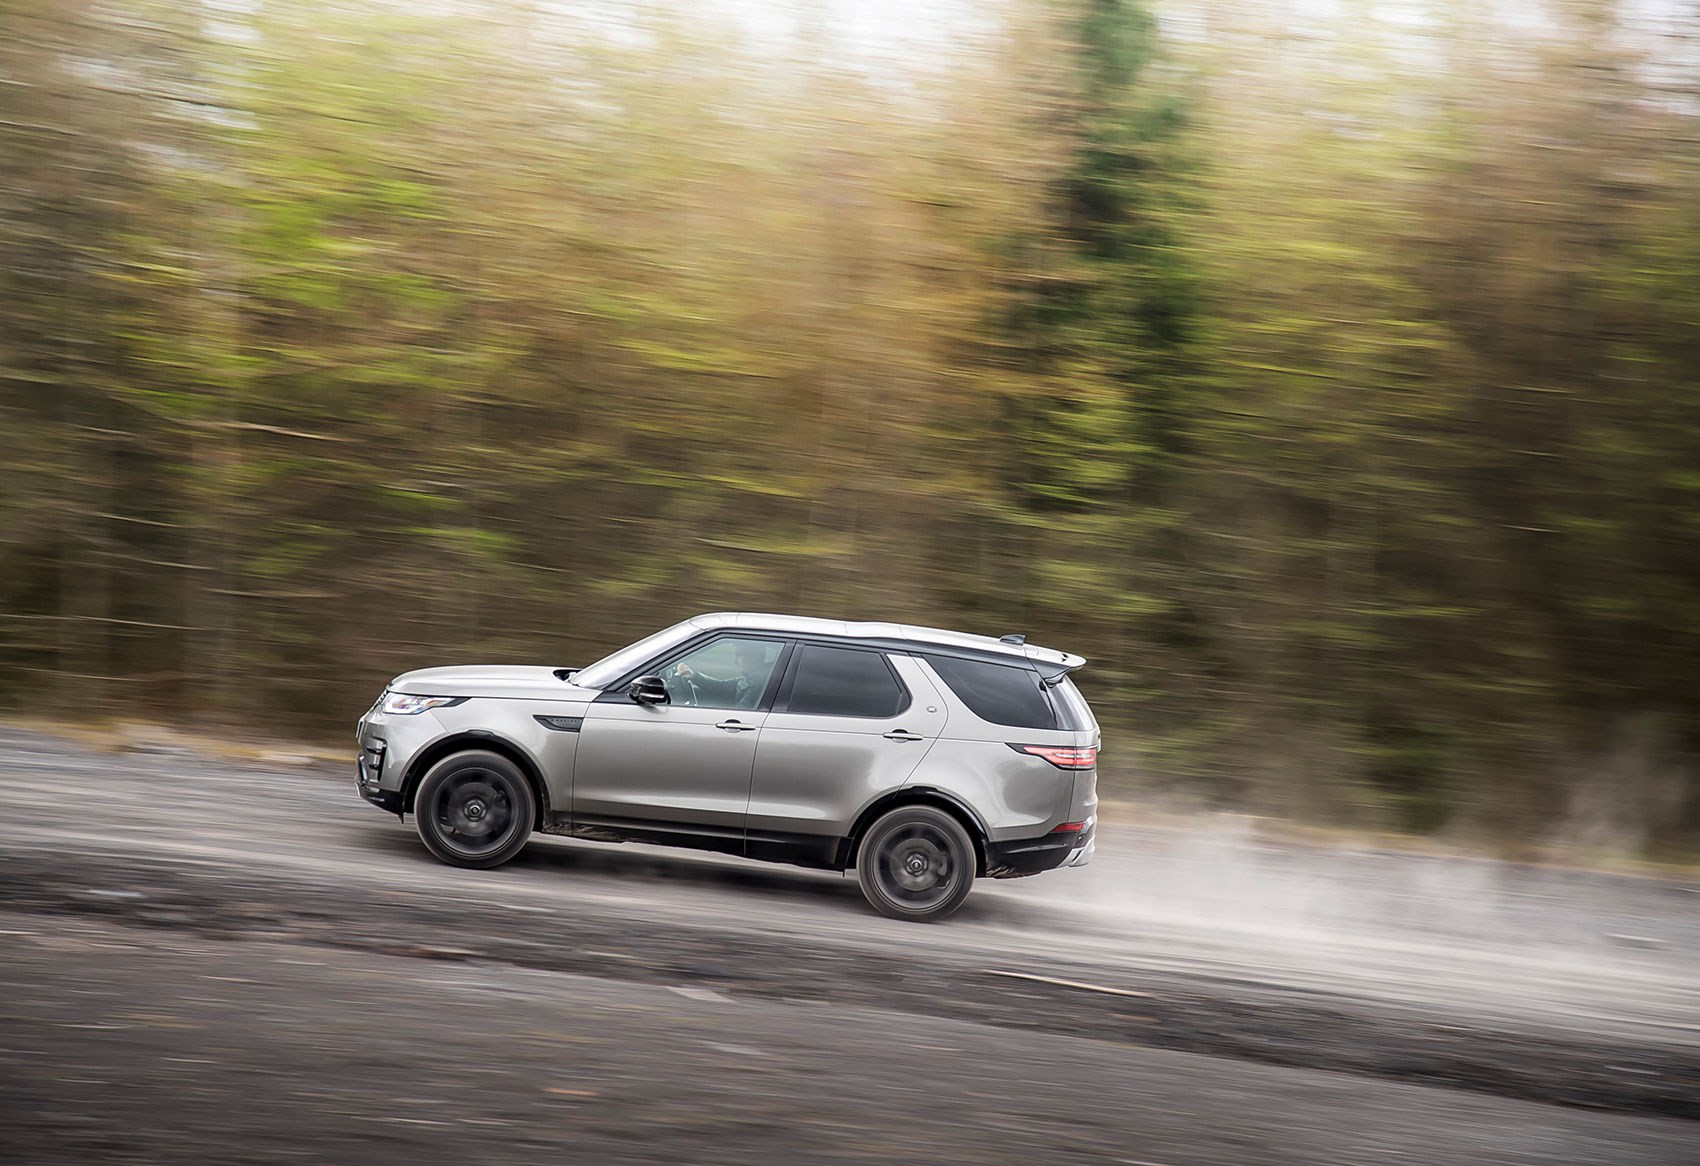 hight resolution of land rover discovery vs its rivals land rover discovery 5 in its natural habitat